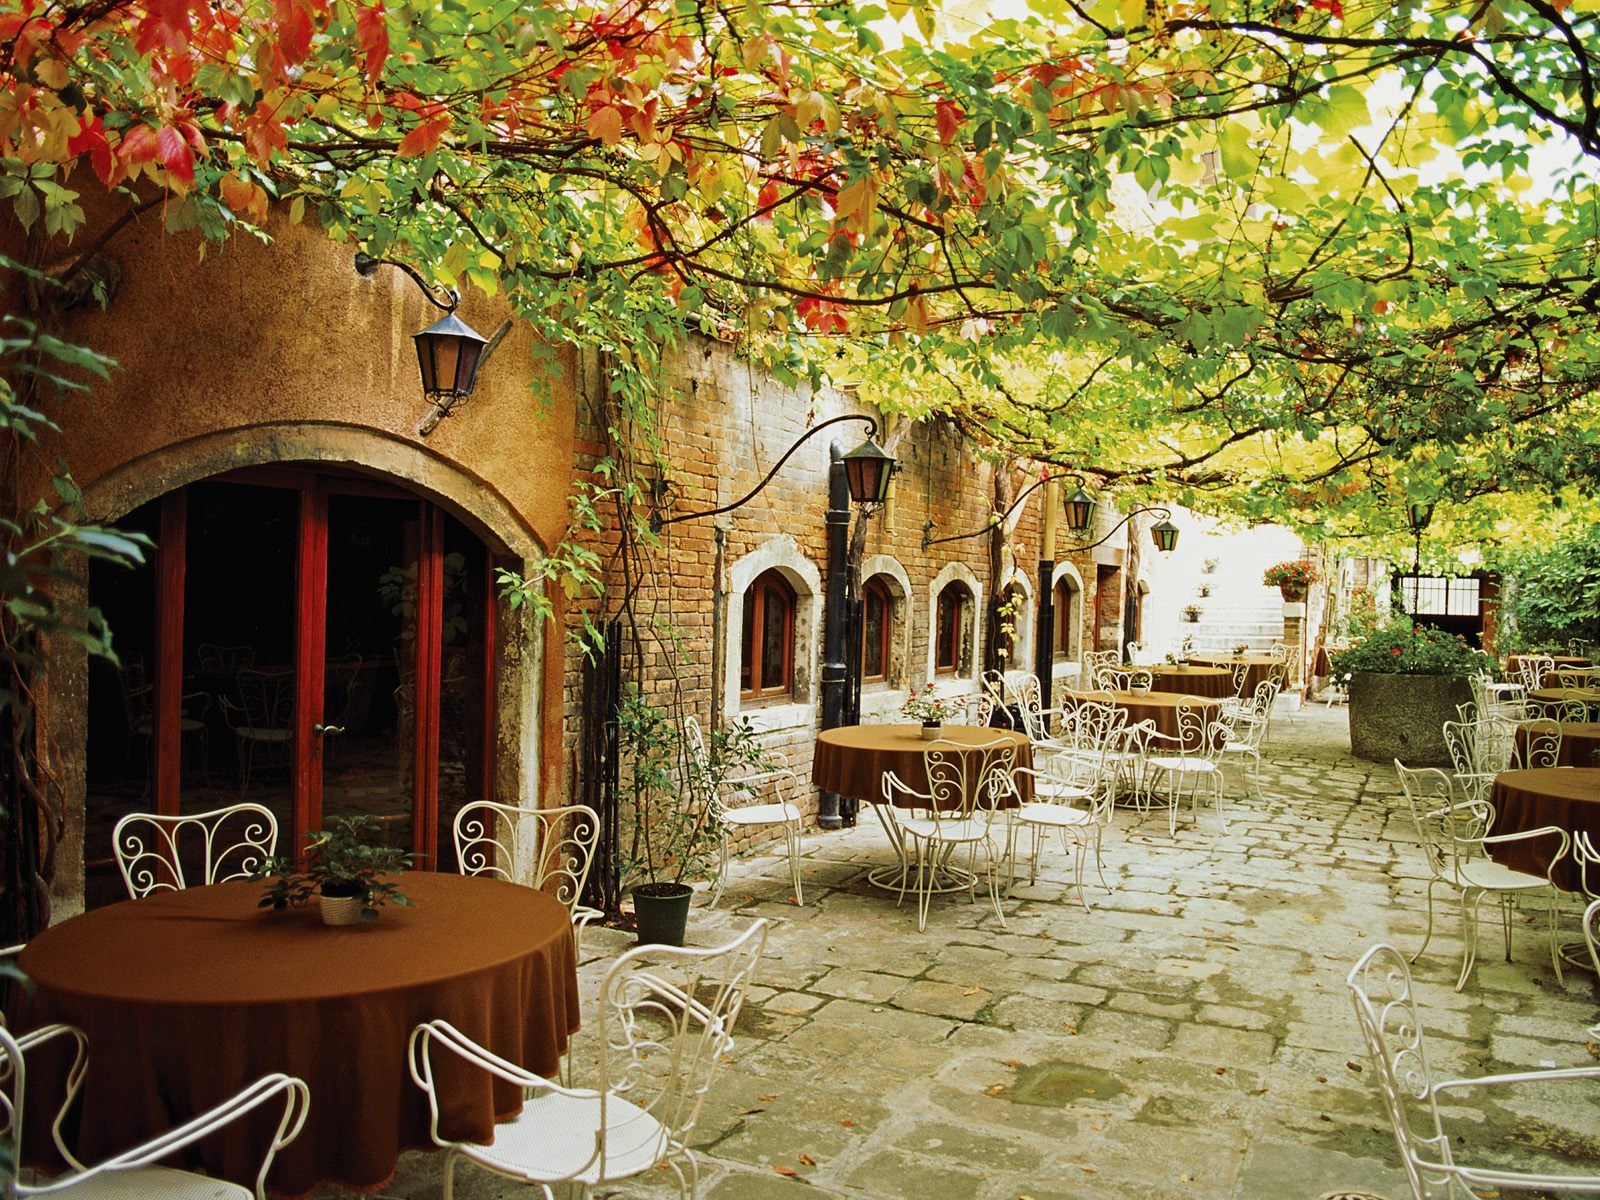 Dining Alfresco Venice  Italy 904.29 Kb